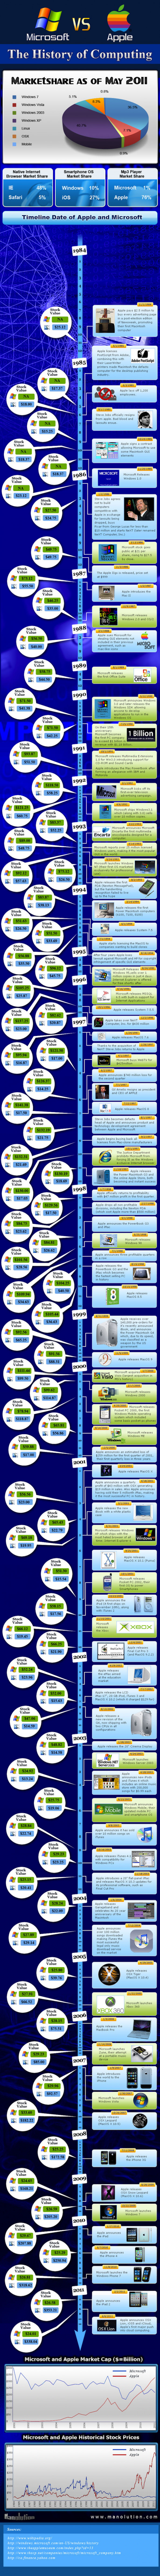 Microsoft Vs. Apple  Infographic